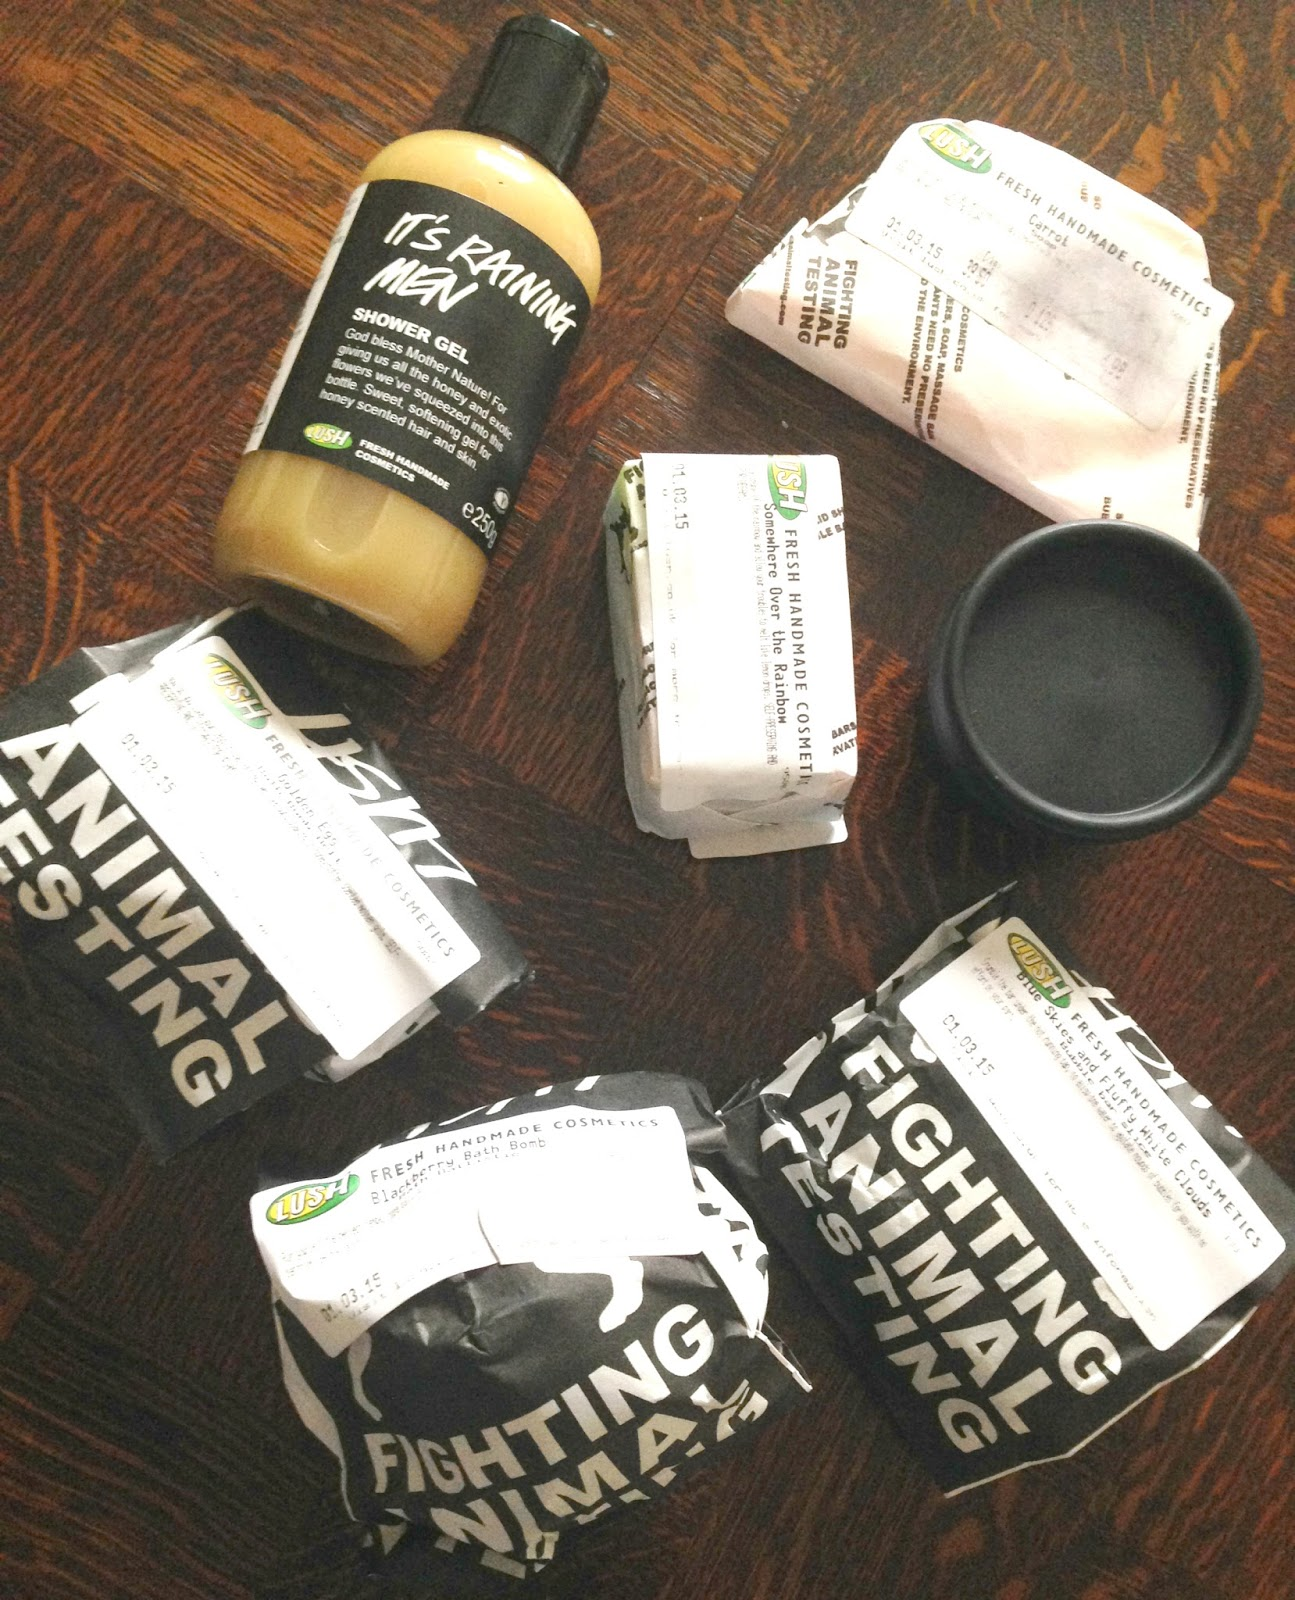 Lush Haul from Chester